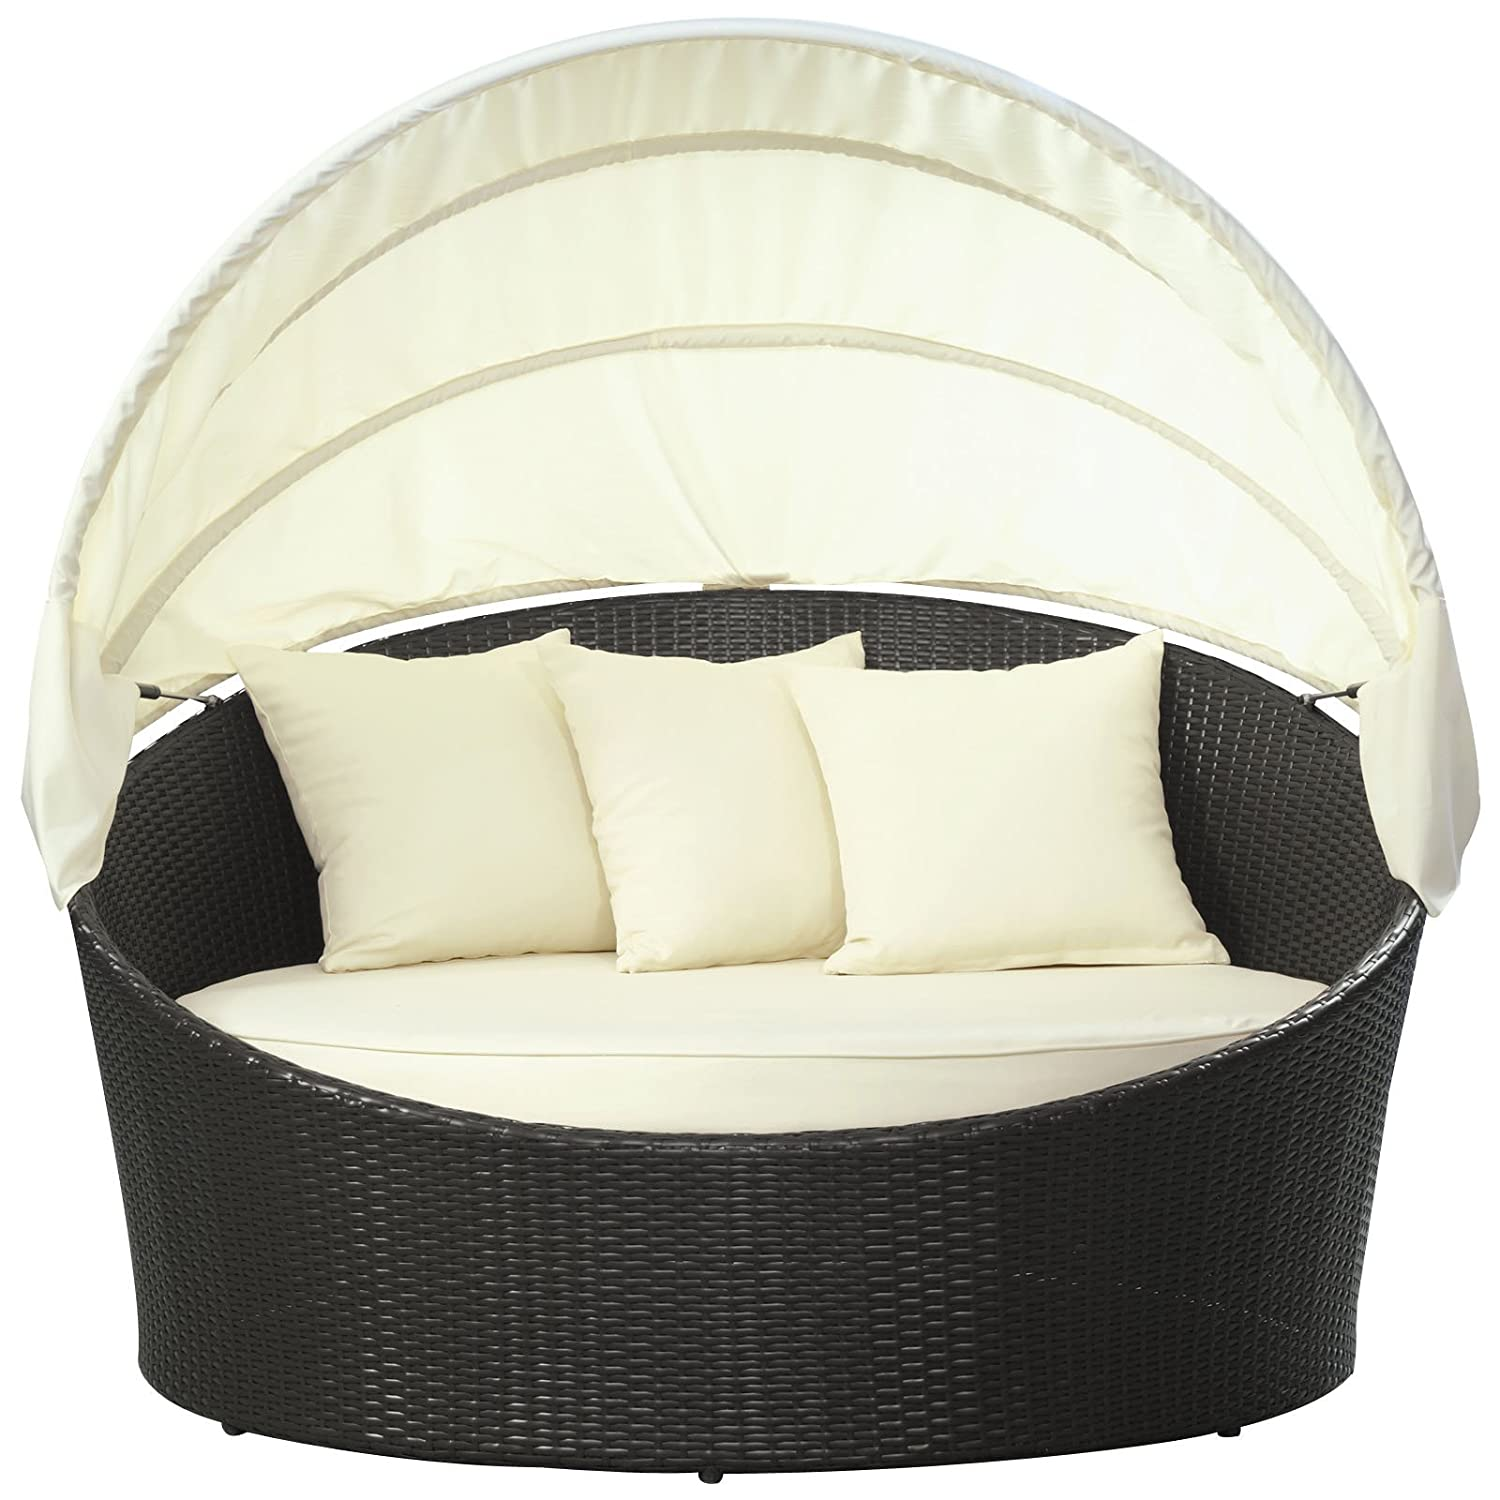 Amazon.com  Modway Siesta Outdoor Wicker Patio Canopy Bed in Espresso with White Cushions  Patio Furniture Cushions  Garden u0026 Outdoor  sc 1 st  Amazon.com & Amazon.com : Modway Siesta Outdoor Wicker Patio Canopy Bed in ...